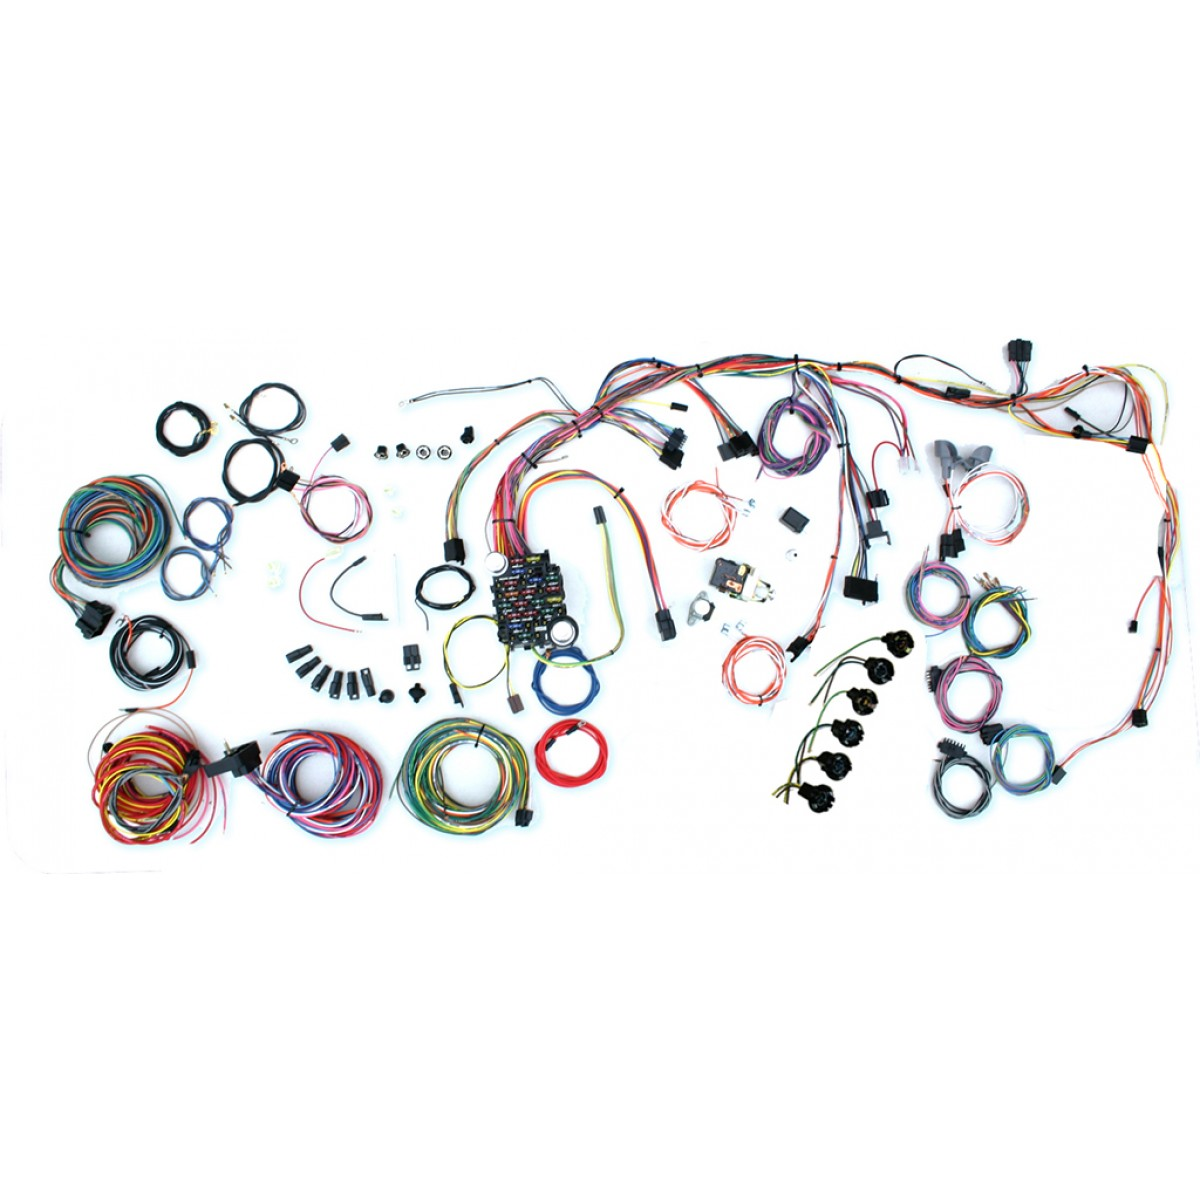 Wiring Harness For 1972 Nova Reinvent Your Diagram Light 78 Chevy 1969 Complete Kit Rh Code510 Com 1970 4 Cylinder